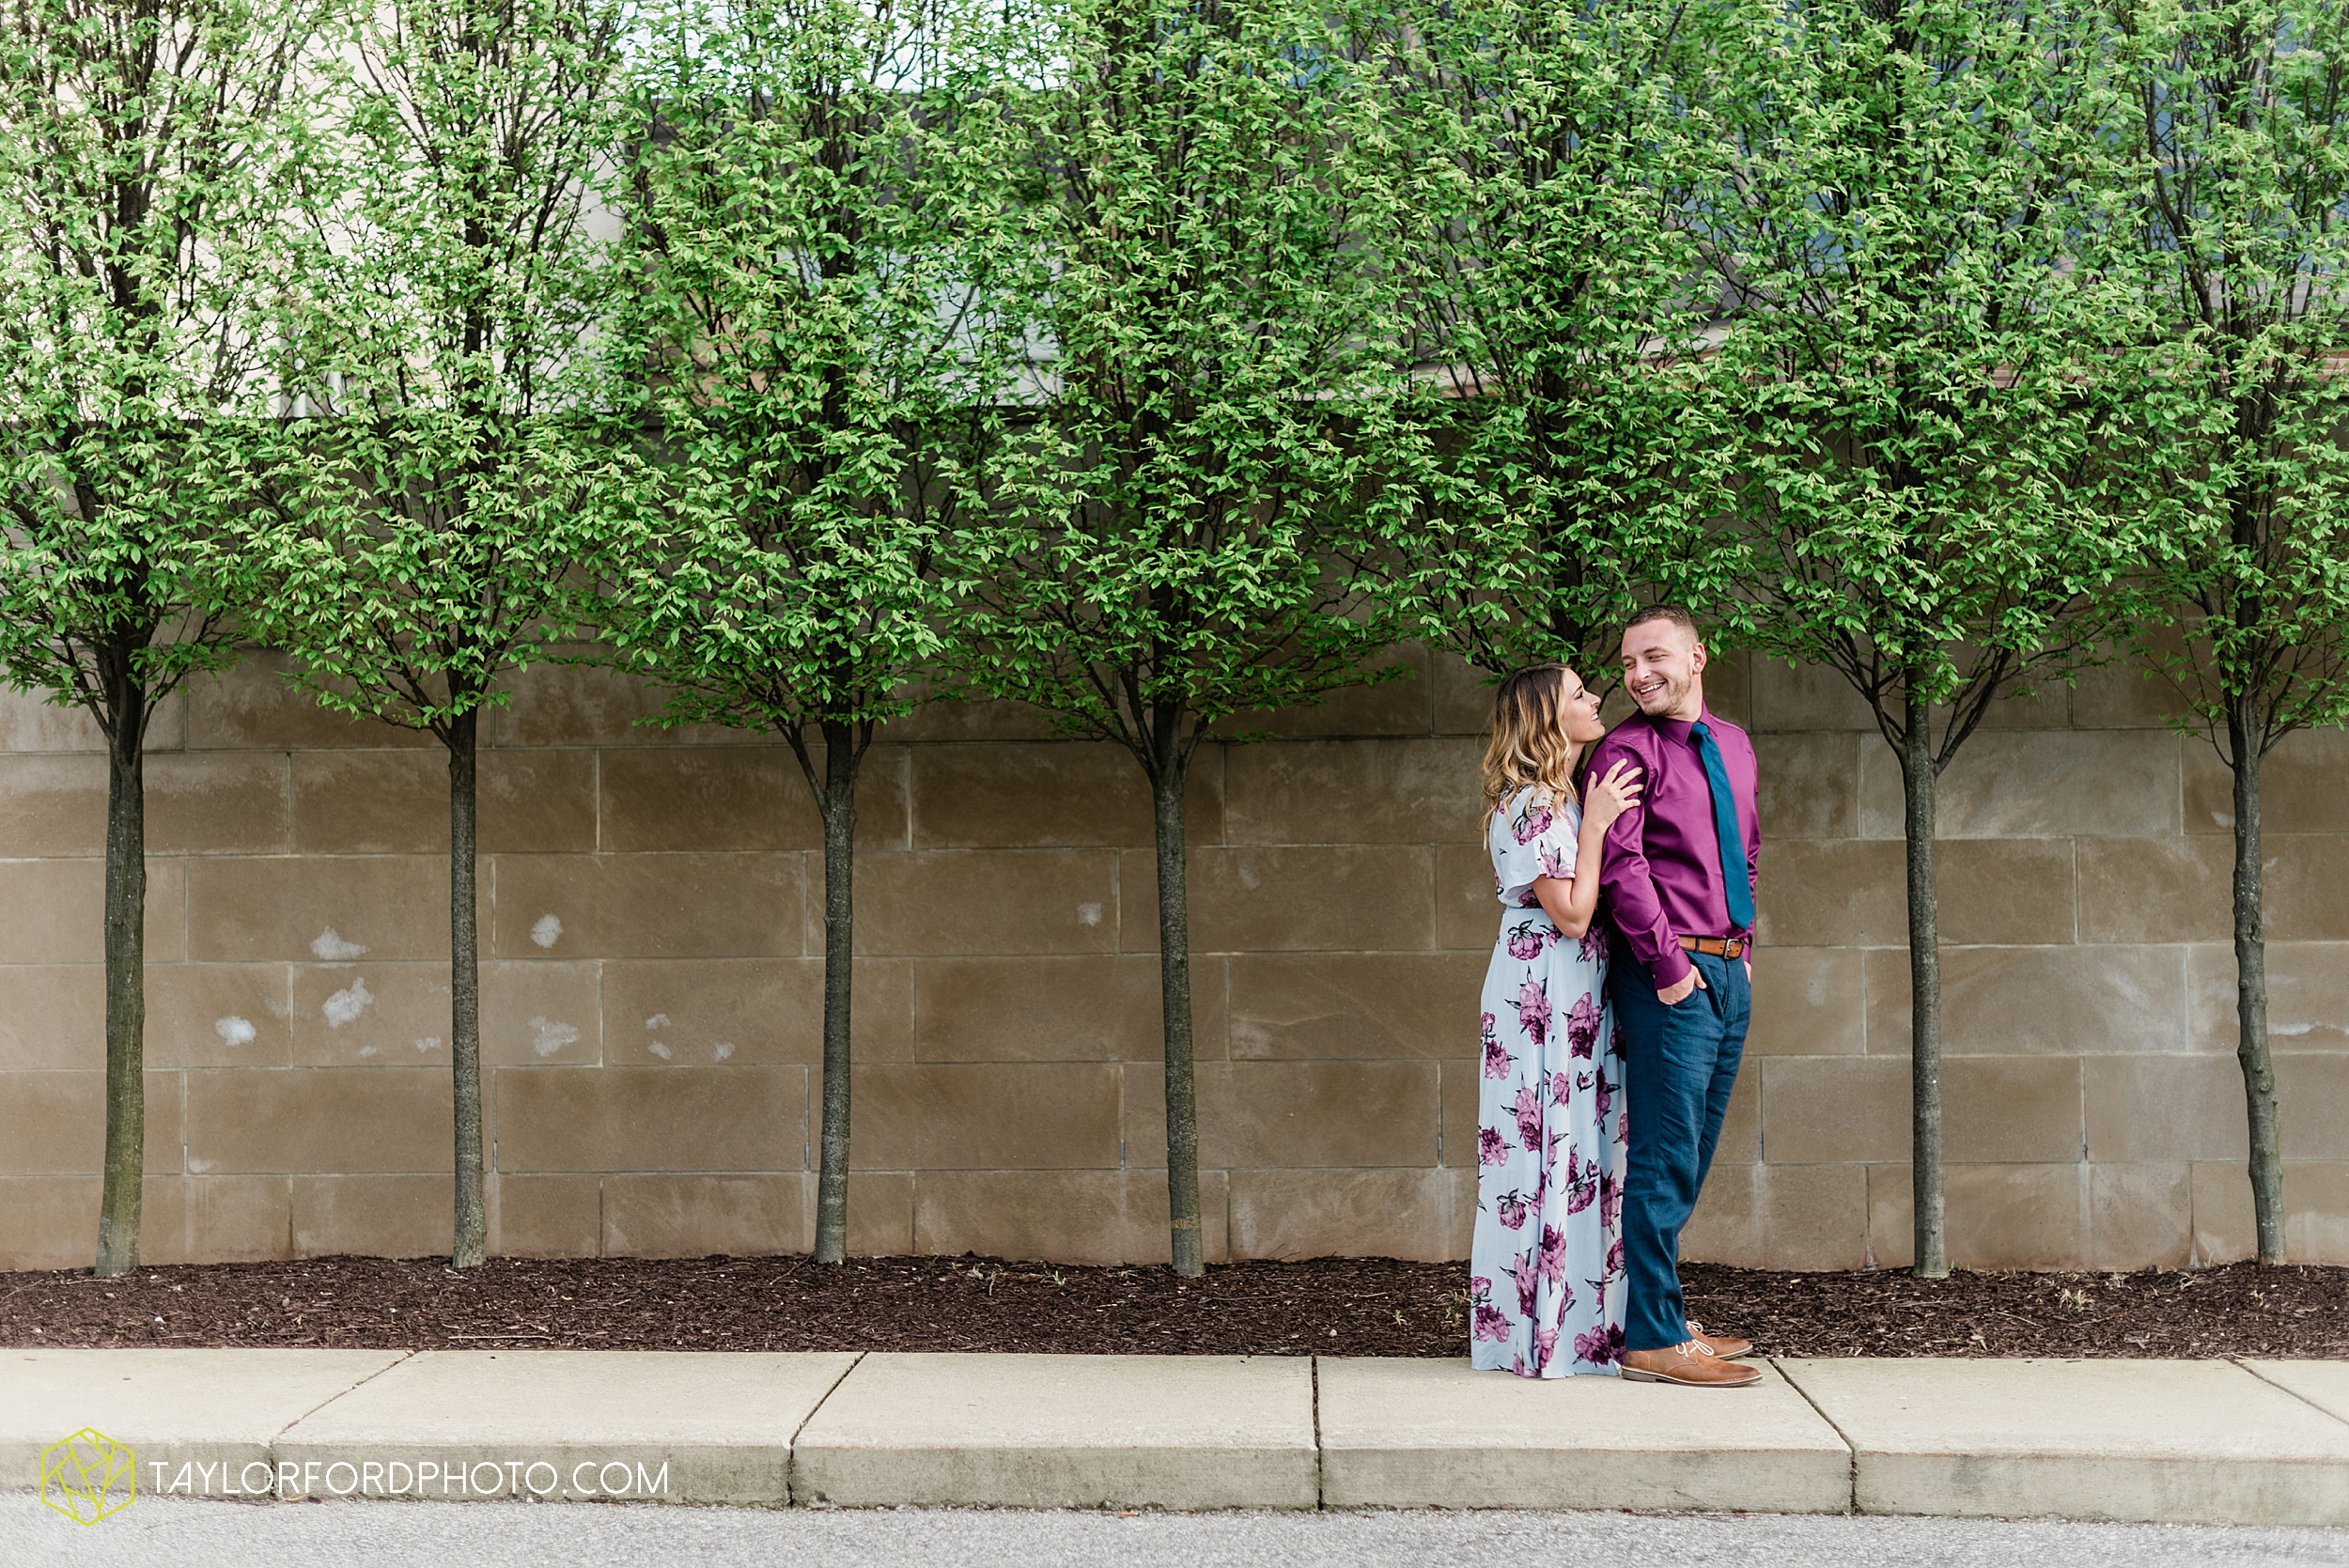 aly-taylor-downtown-fort-wayne-indiana-spring-engagement-photographer-photography-taylor-ford-hirschy-photographer_2586.jpg